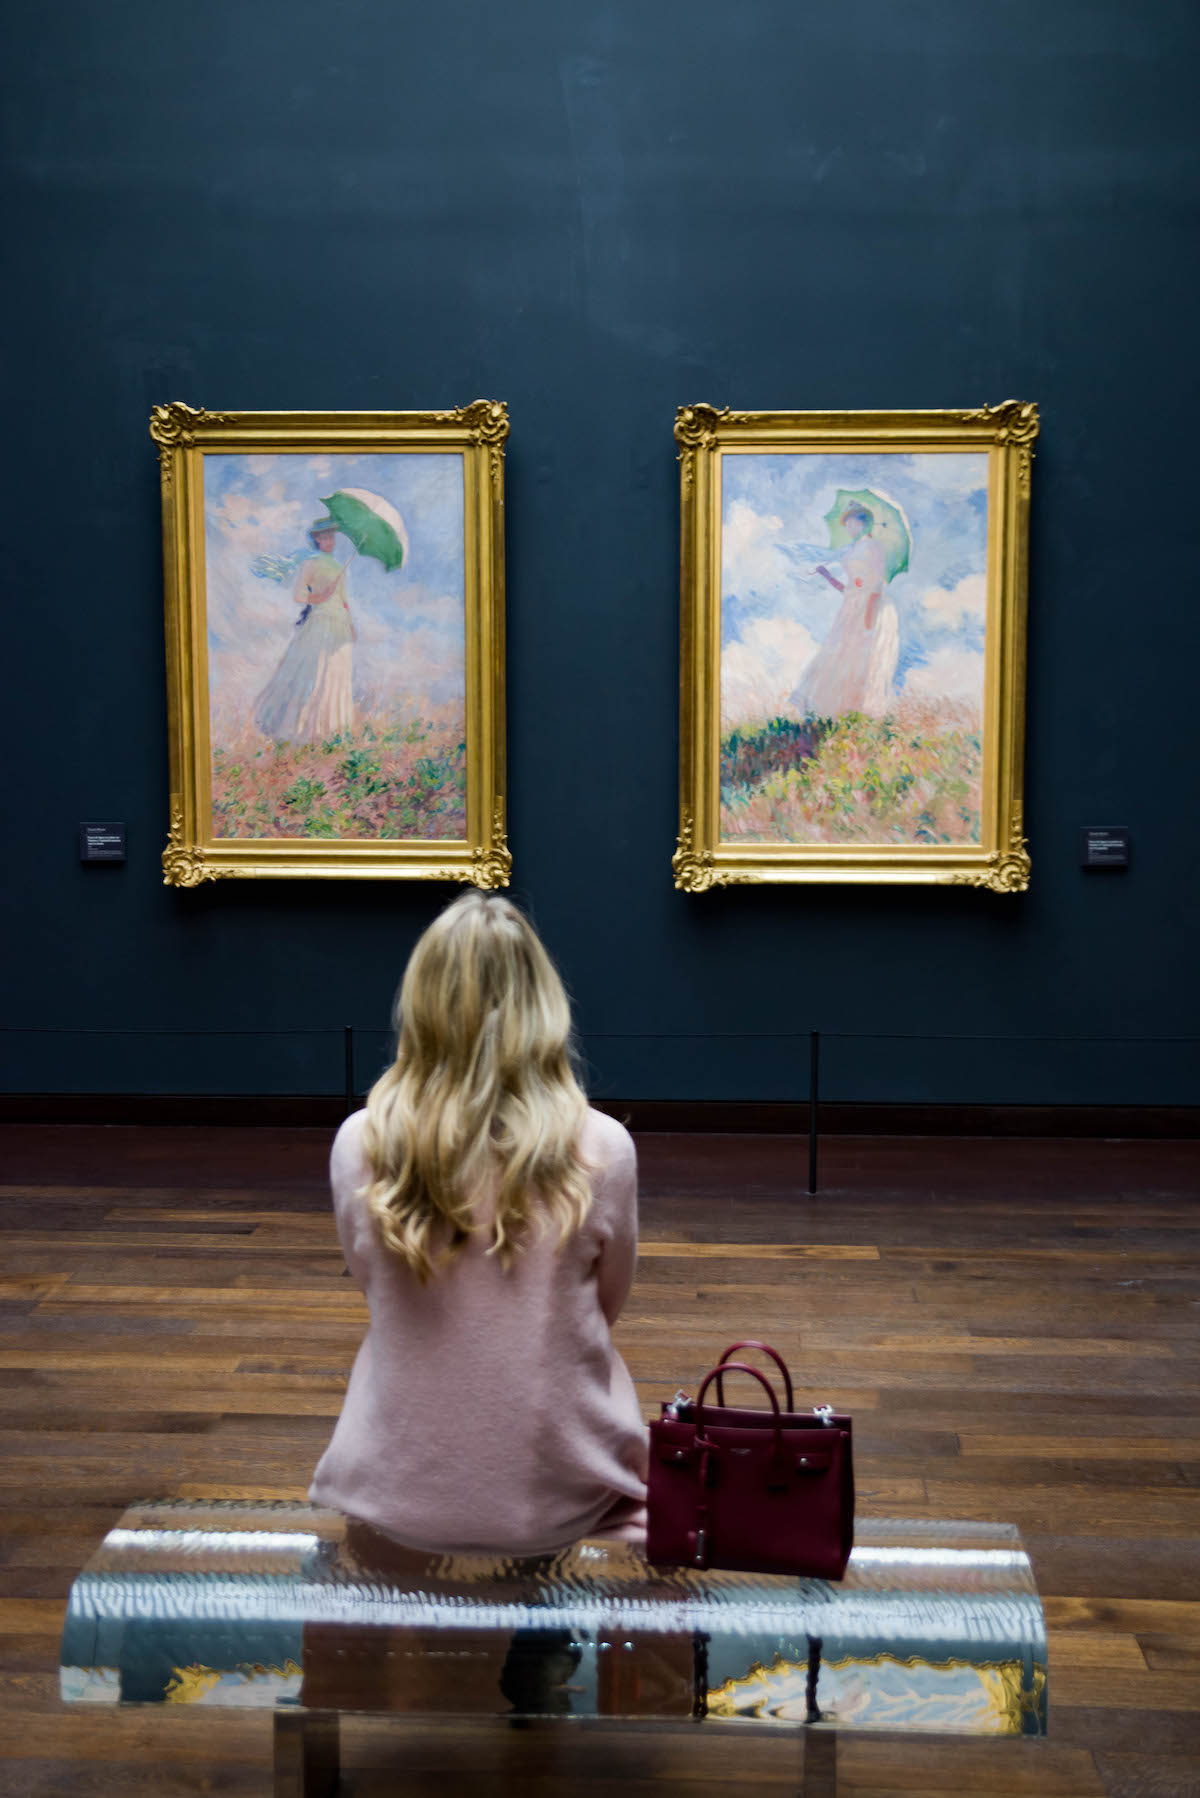 Impressionist Gallery Musee D'Orsay Paris